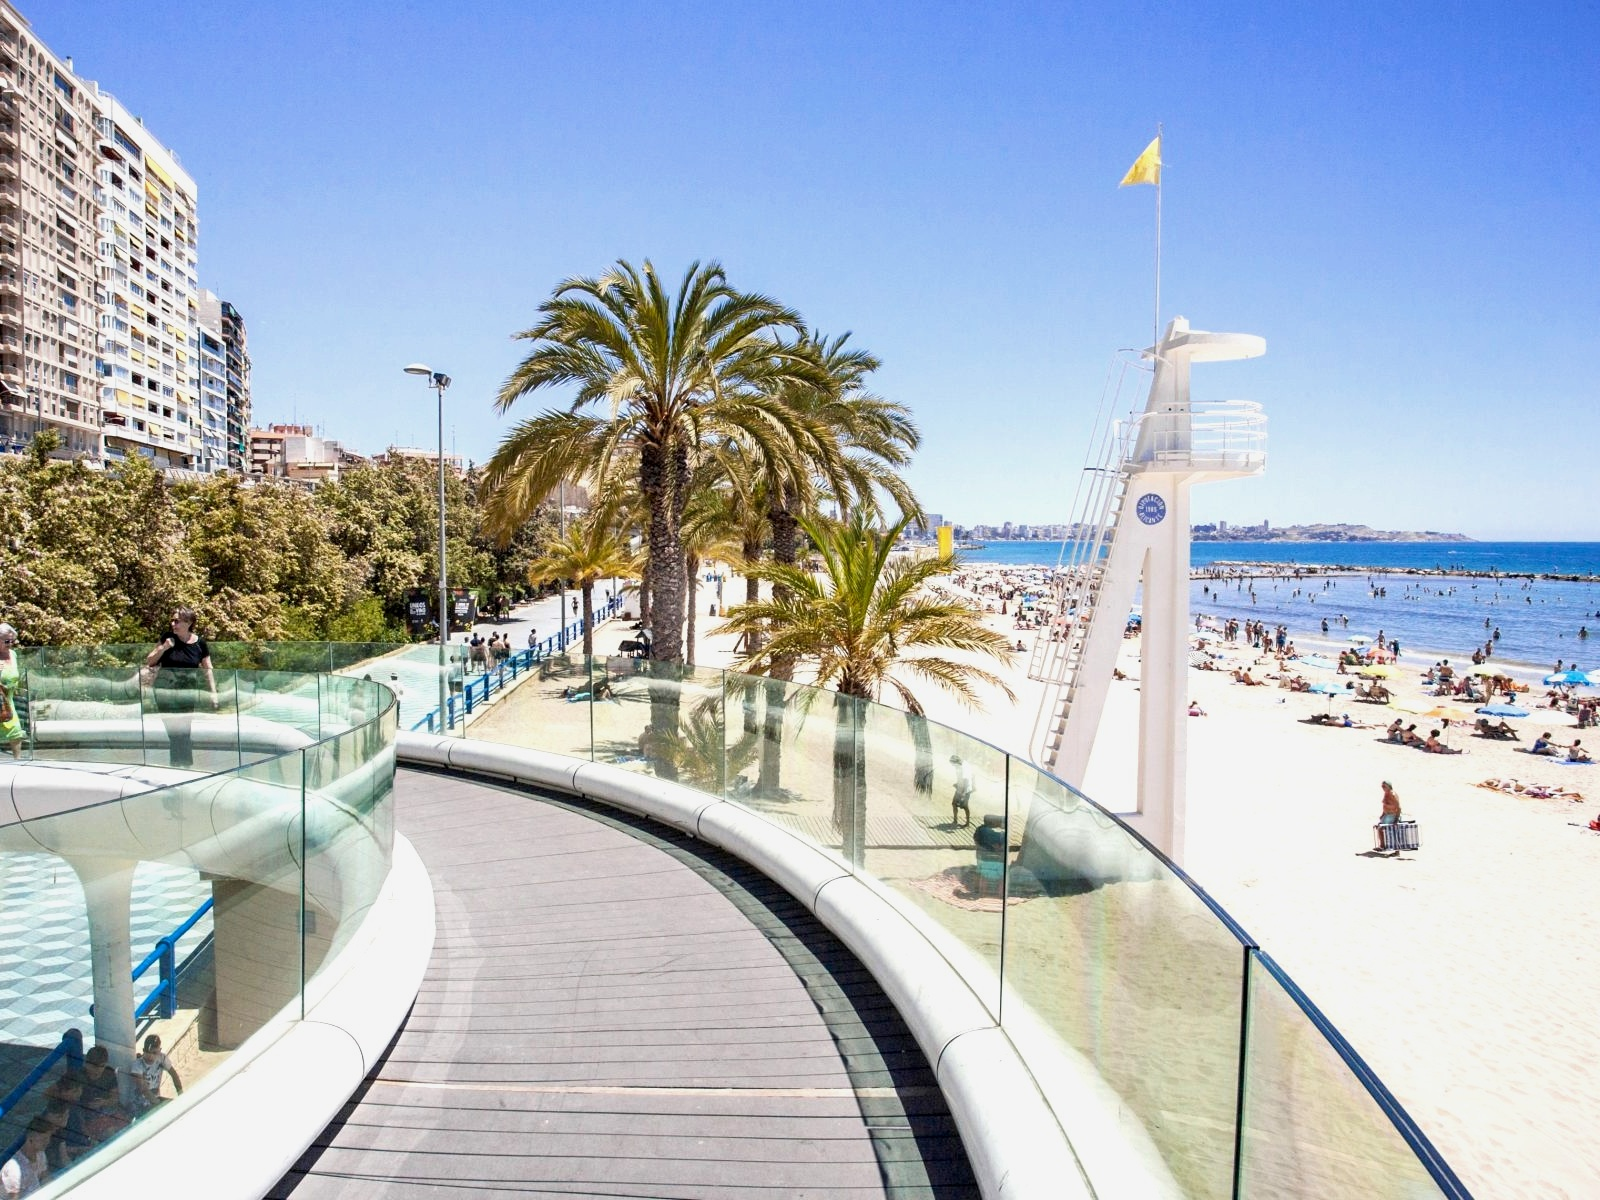 Alicante – Playa del Postiguet - Situated in the centre of Alicante city, this beach provides a clear view of the Mediterranean along with disabled access. With the proximity to the city, you'll have access to plenty of eateries, bars, discos, shopping malls, and so much more.